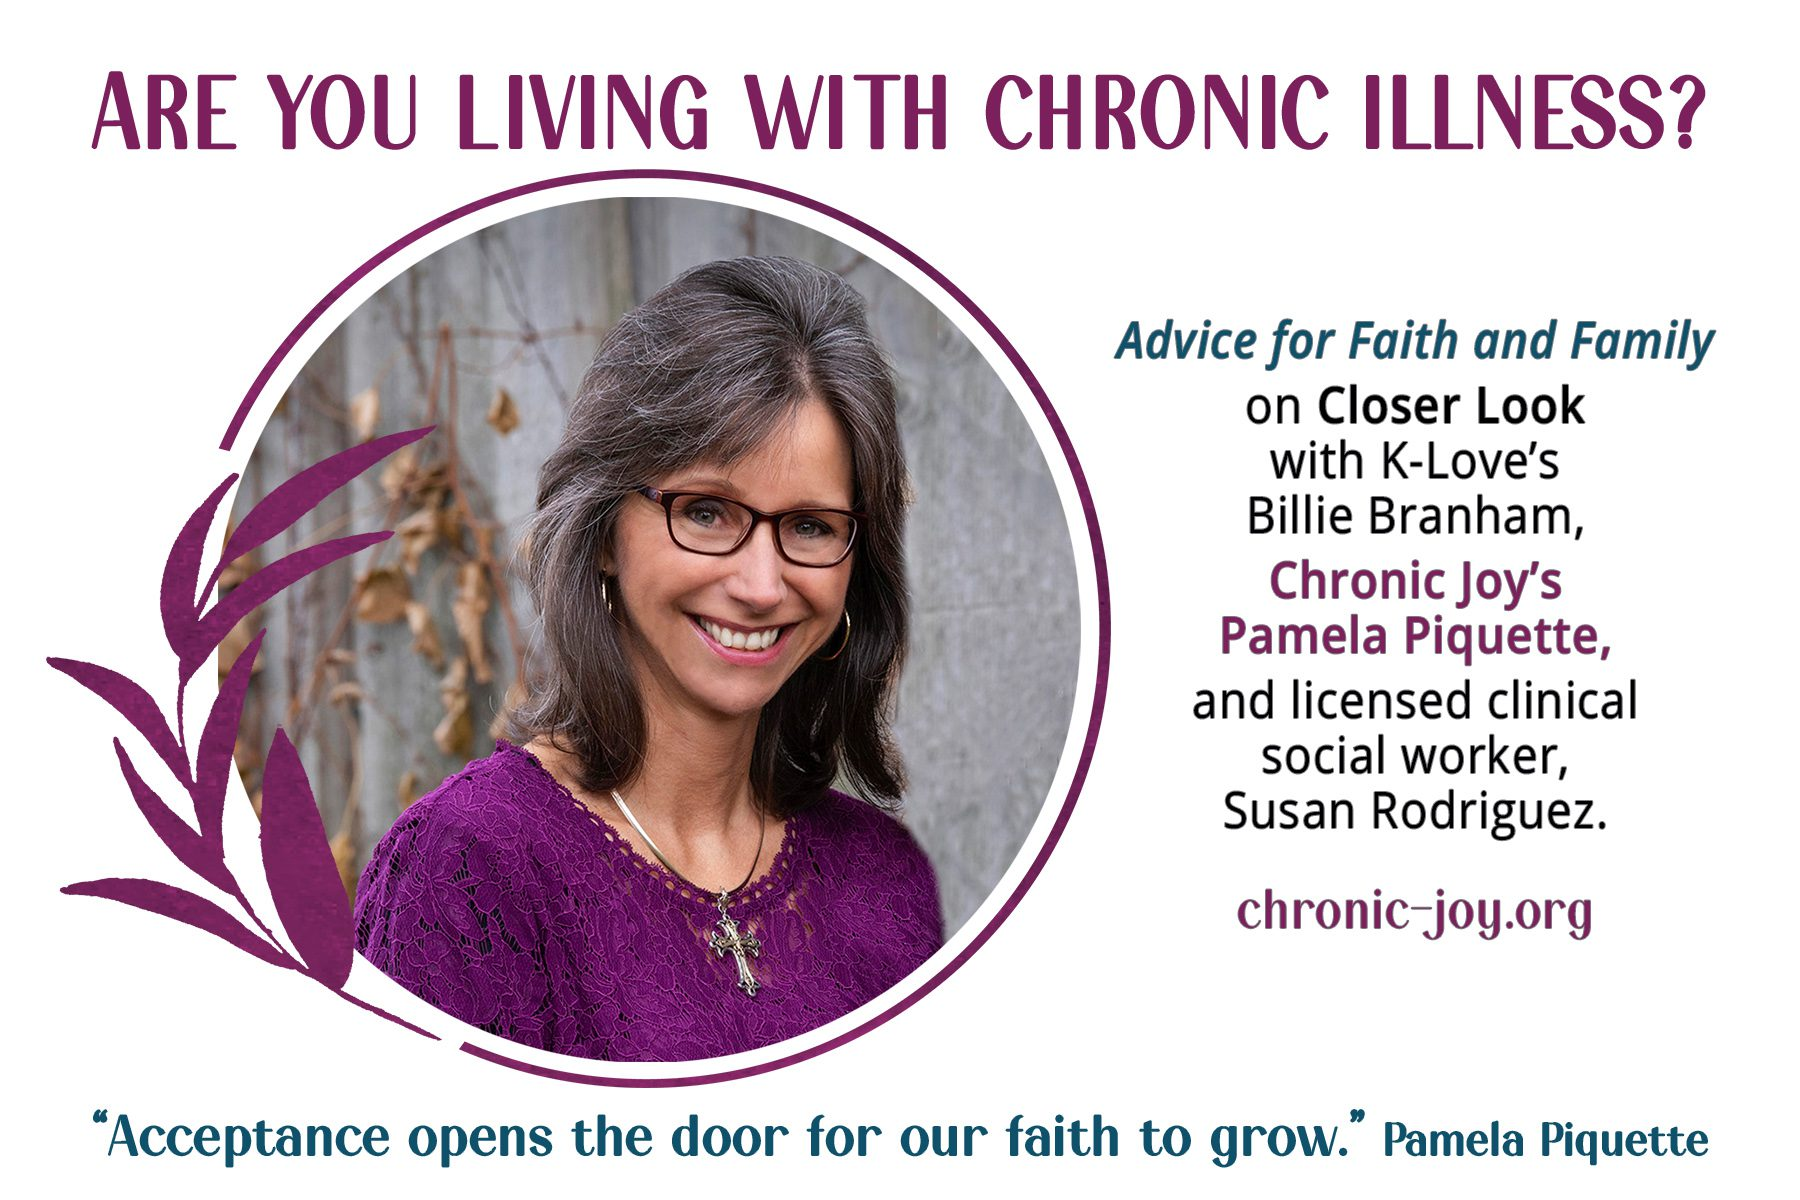 Are You Living With Chronic Illness?